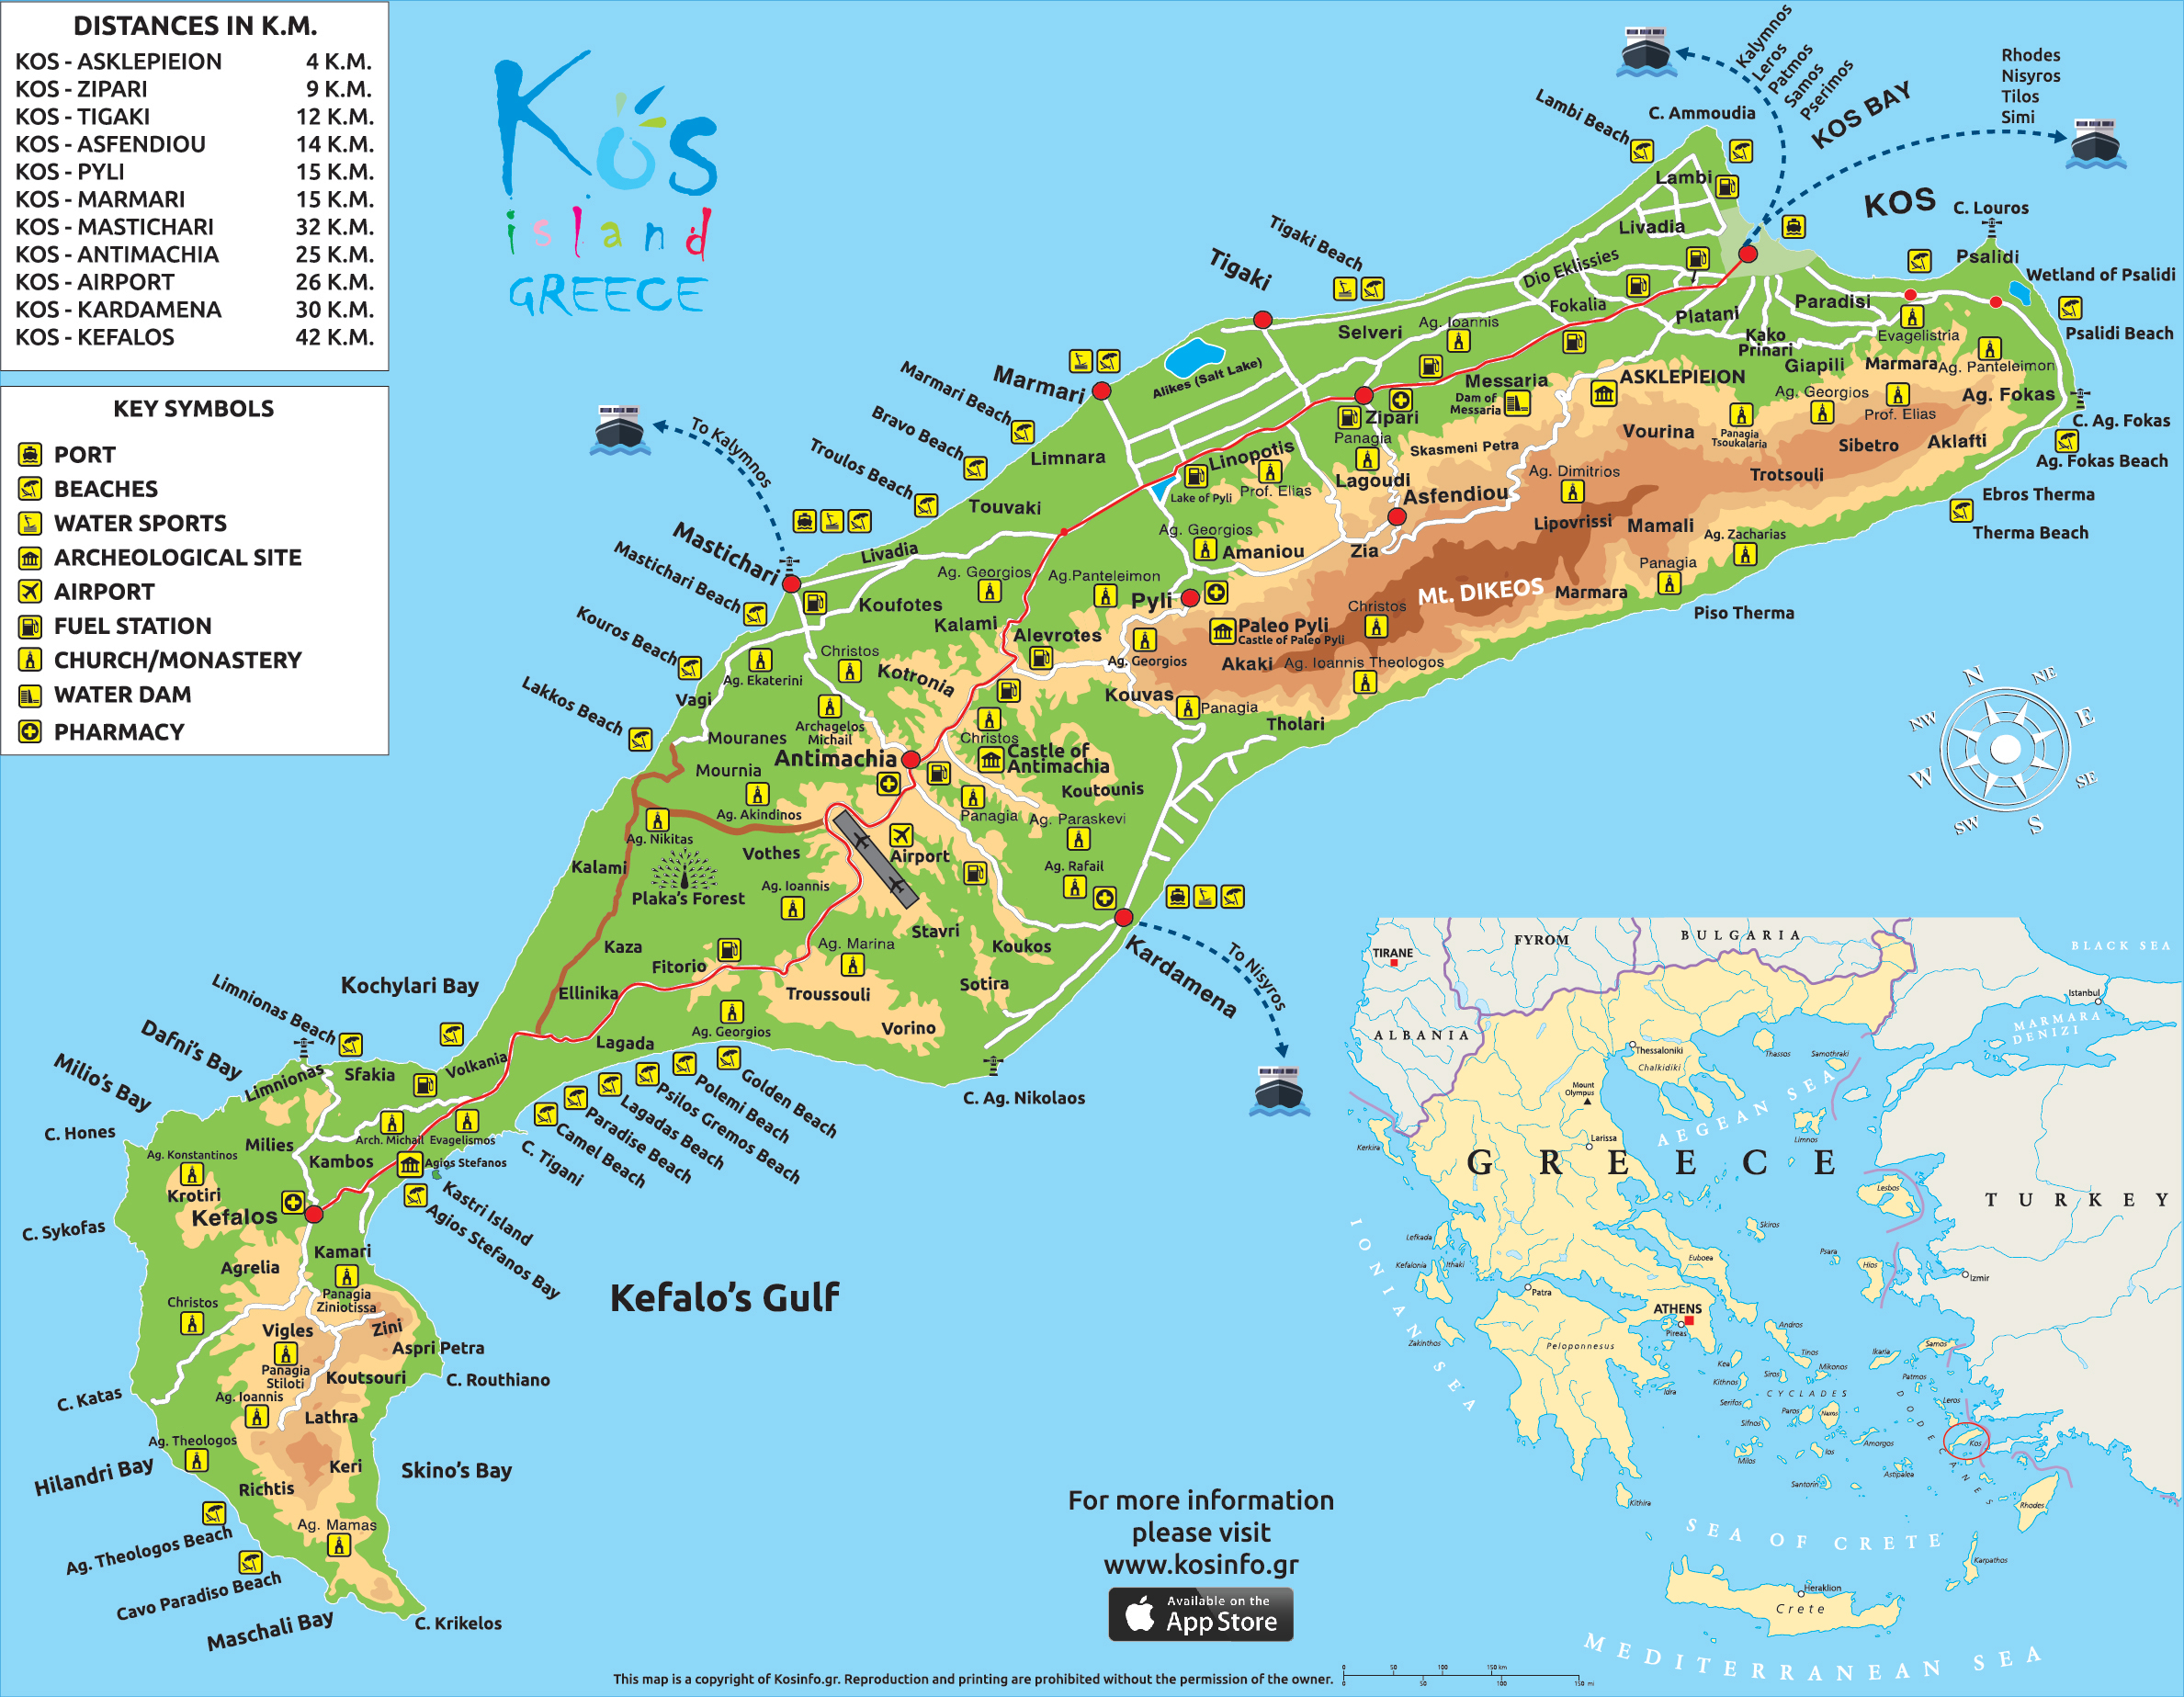 Kos map kos island town greece maps information brochures kos island map gumiabroncs Choice Image